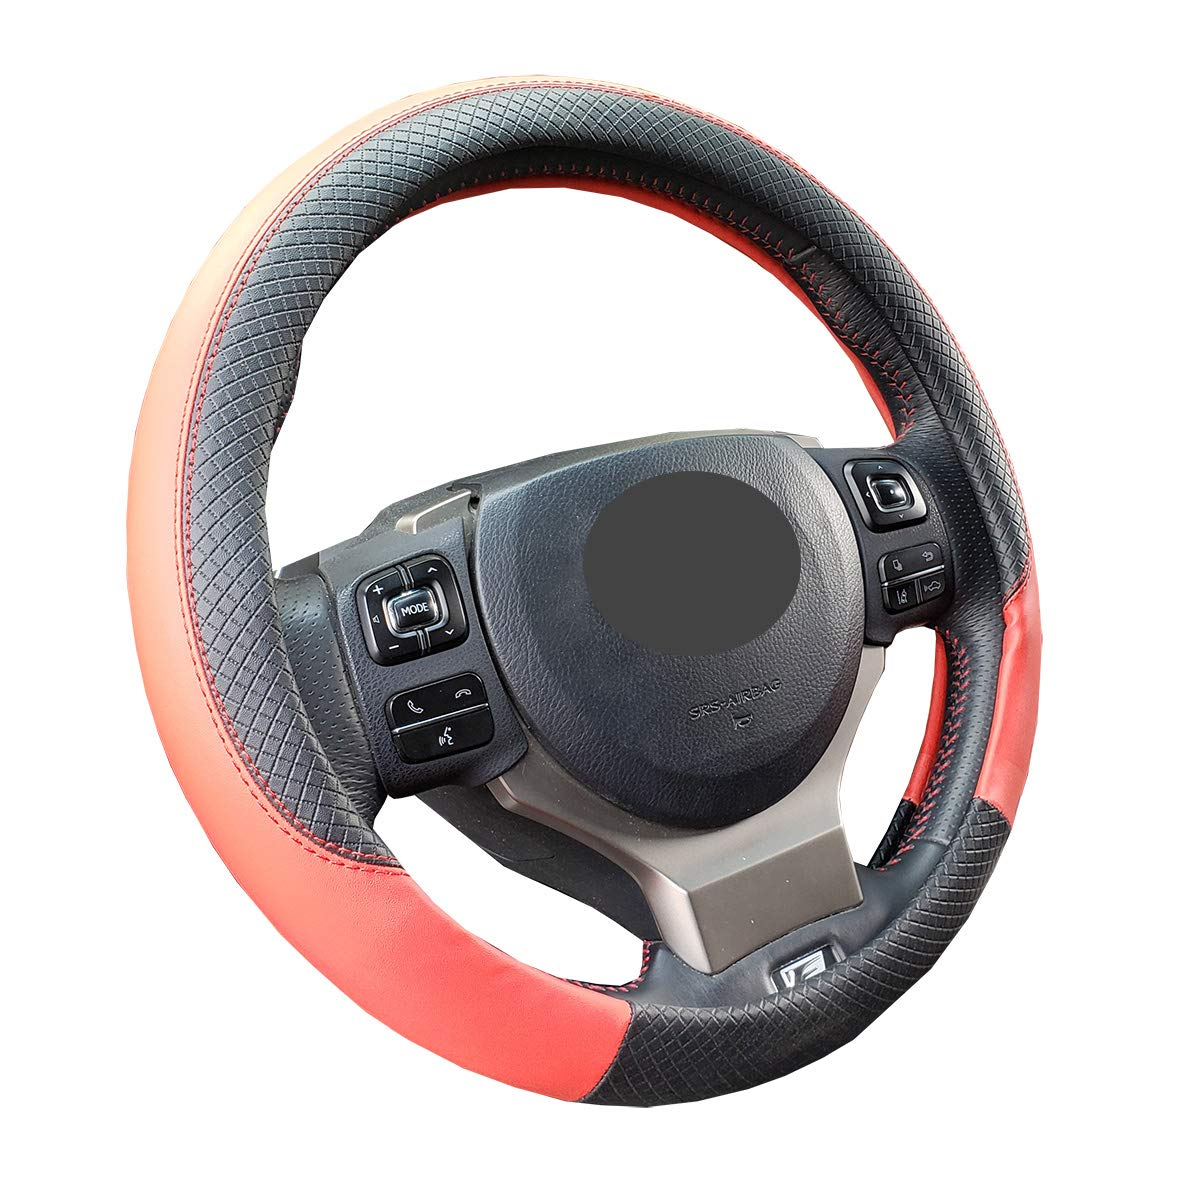 iSEATCOVER Steering Wheel Cover Genuine Leather Anti-Slip Universal 15 Inches for Car Truck SUV Breathable /& Better Grip